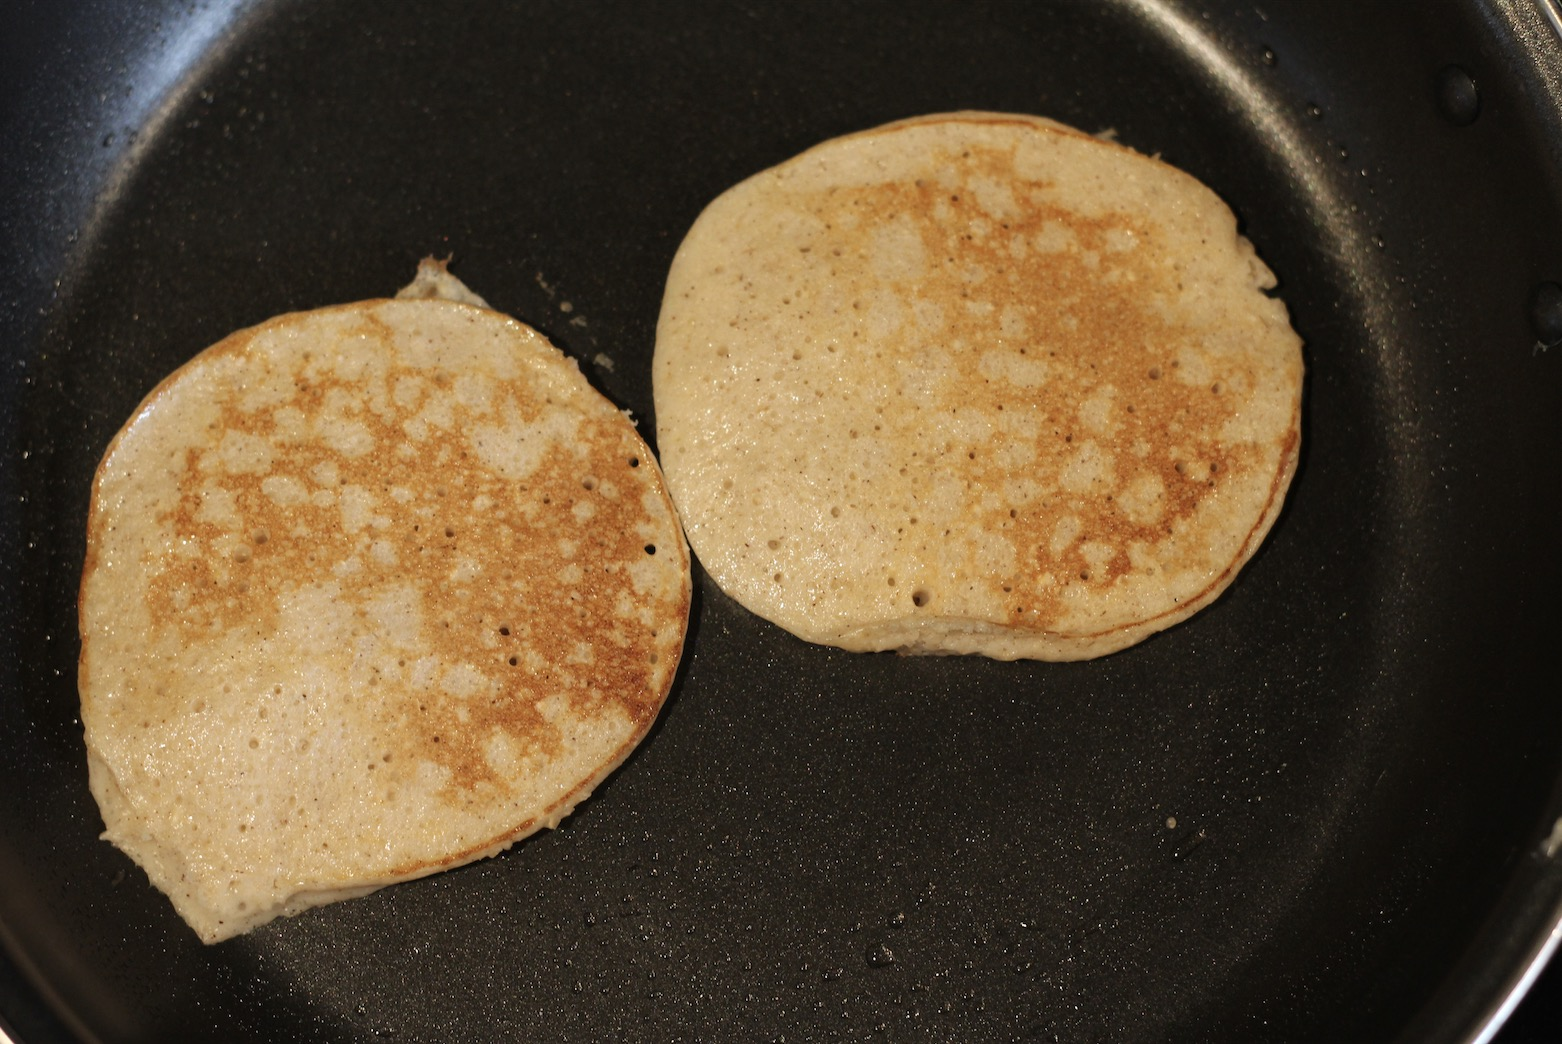 Place the pancake batter on the frying pan